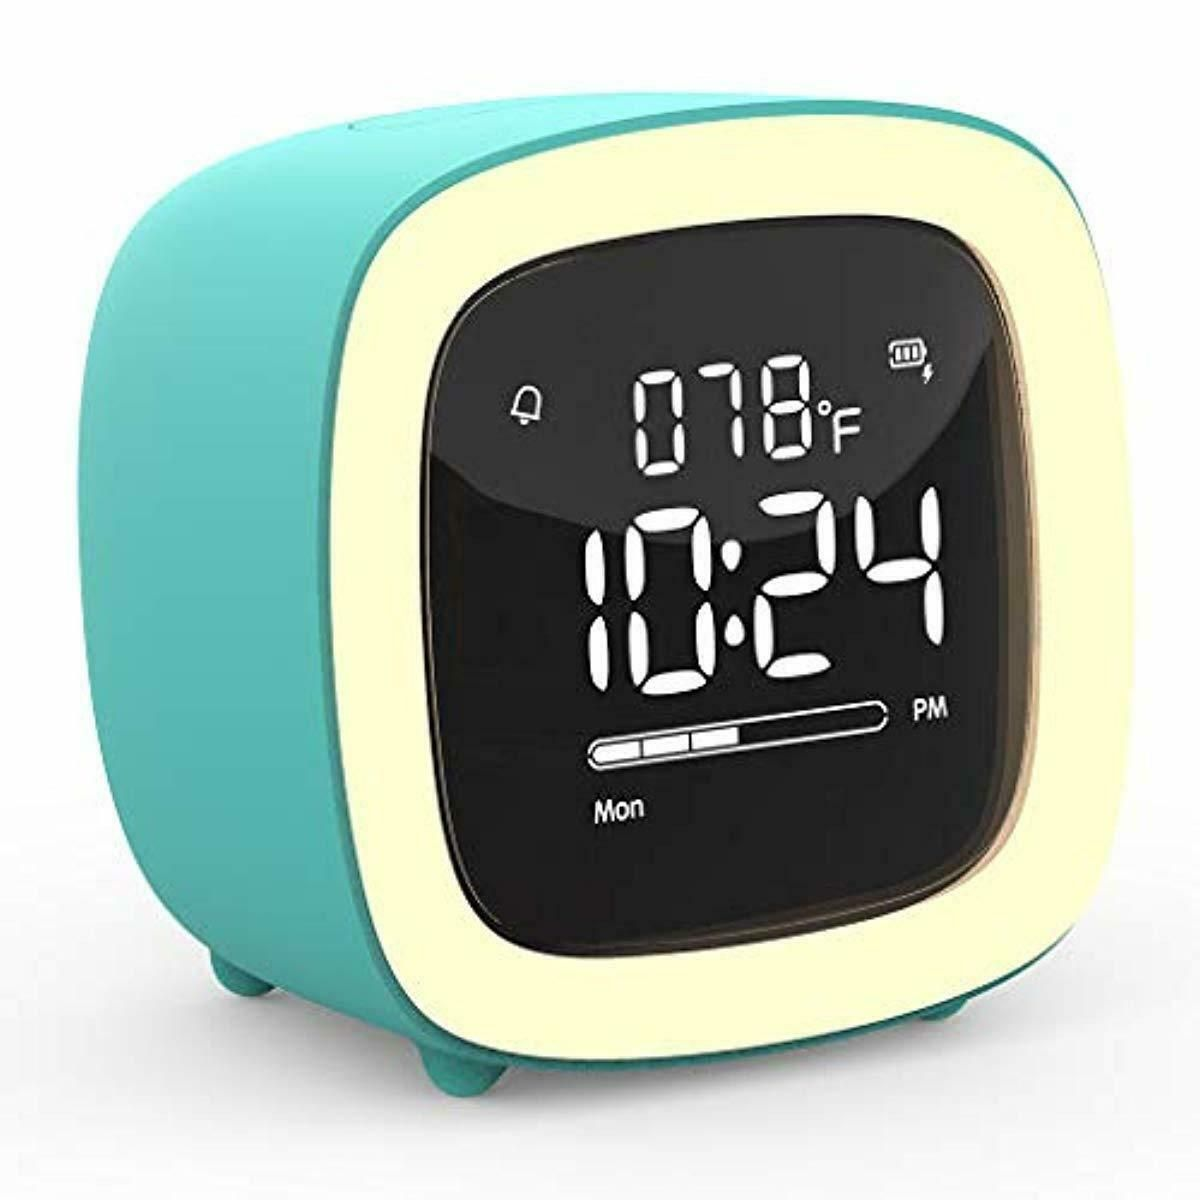 Kids Alarm Clock Cute Tv Night Light Alarm Clock For Kids Girls Children Bed 27 43 Kids Clocks Ideas Of Kids Light Alarm Clock